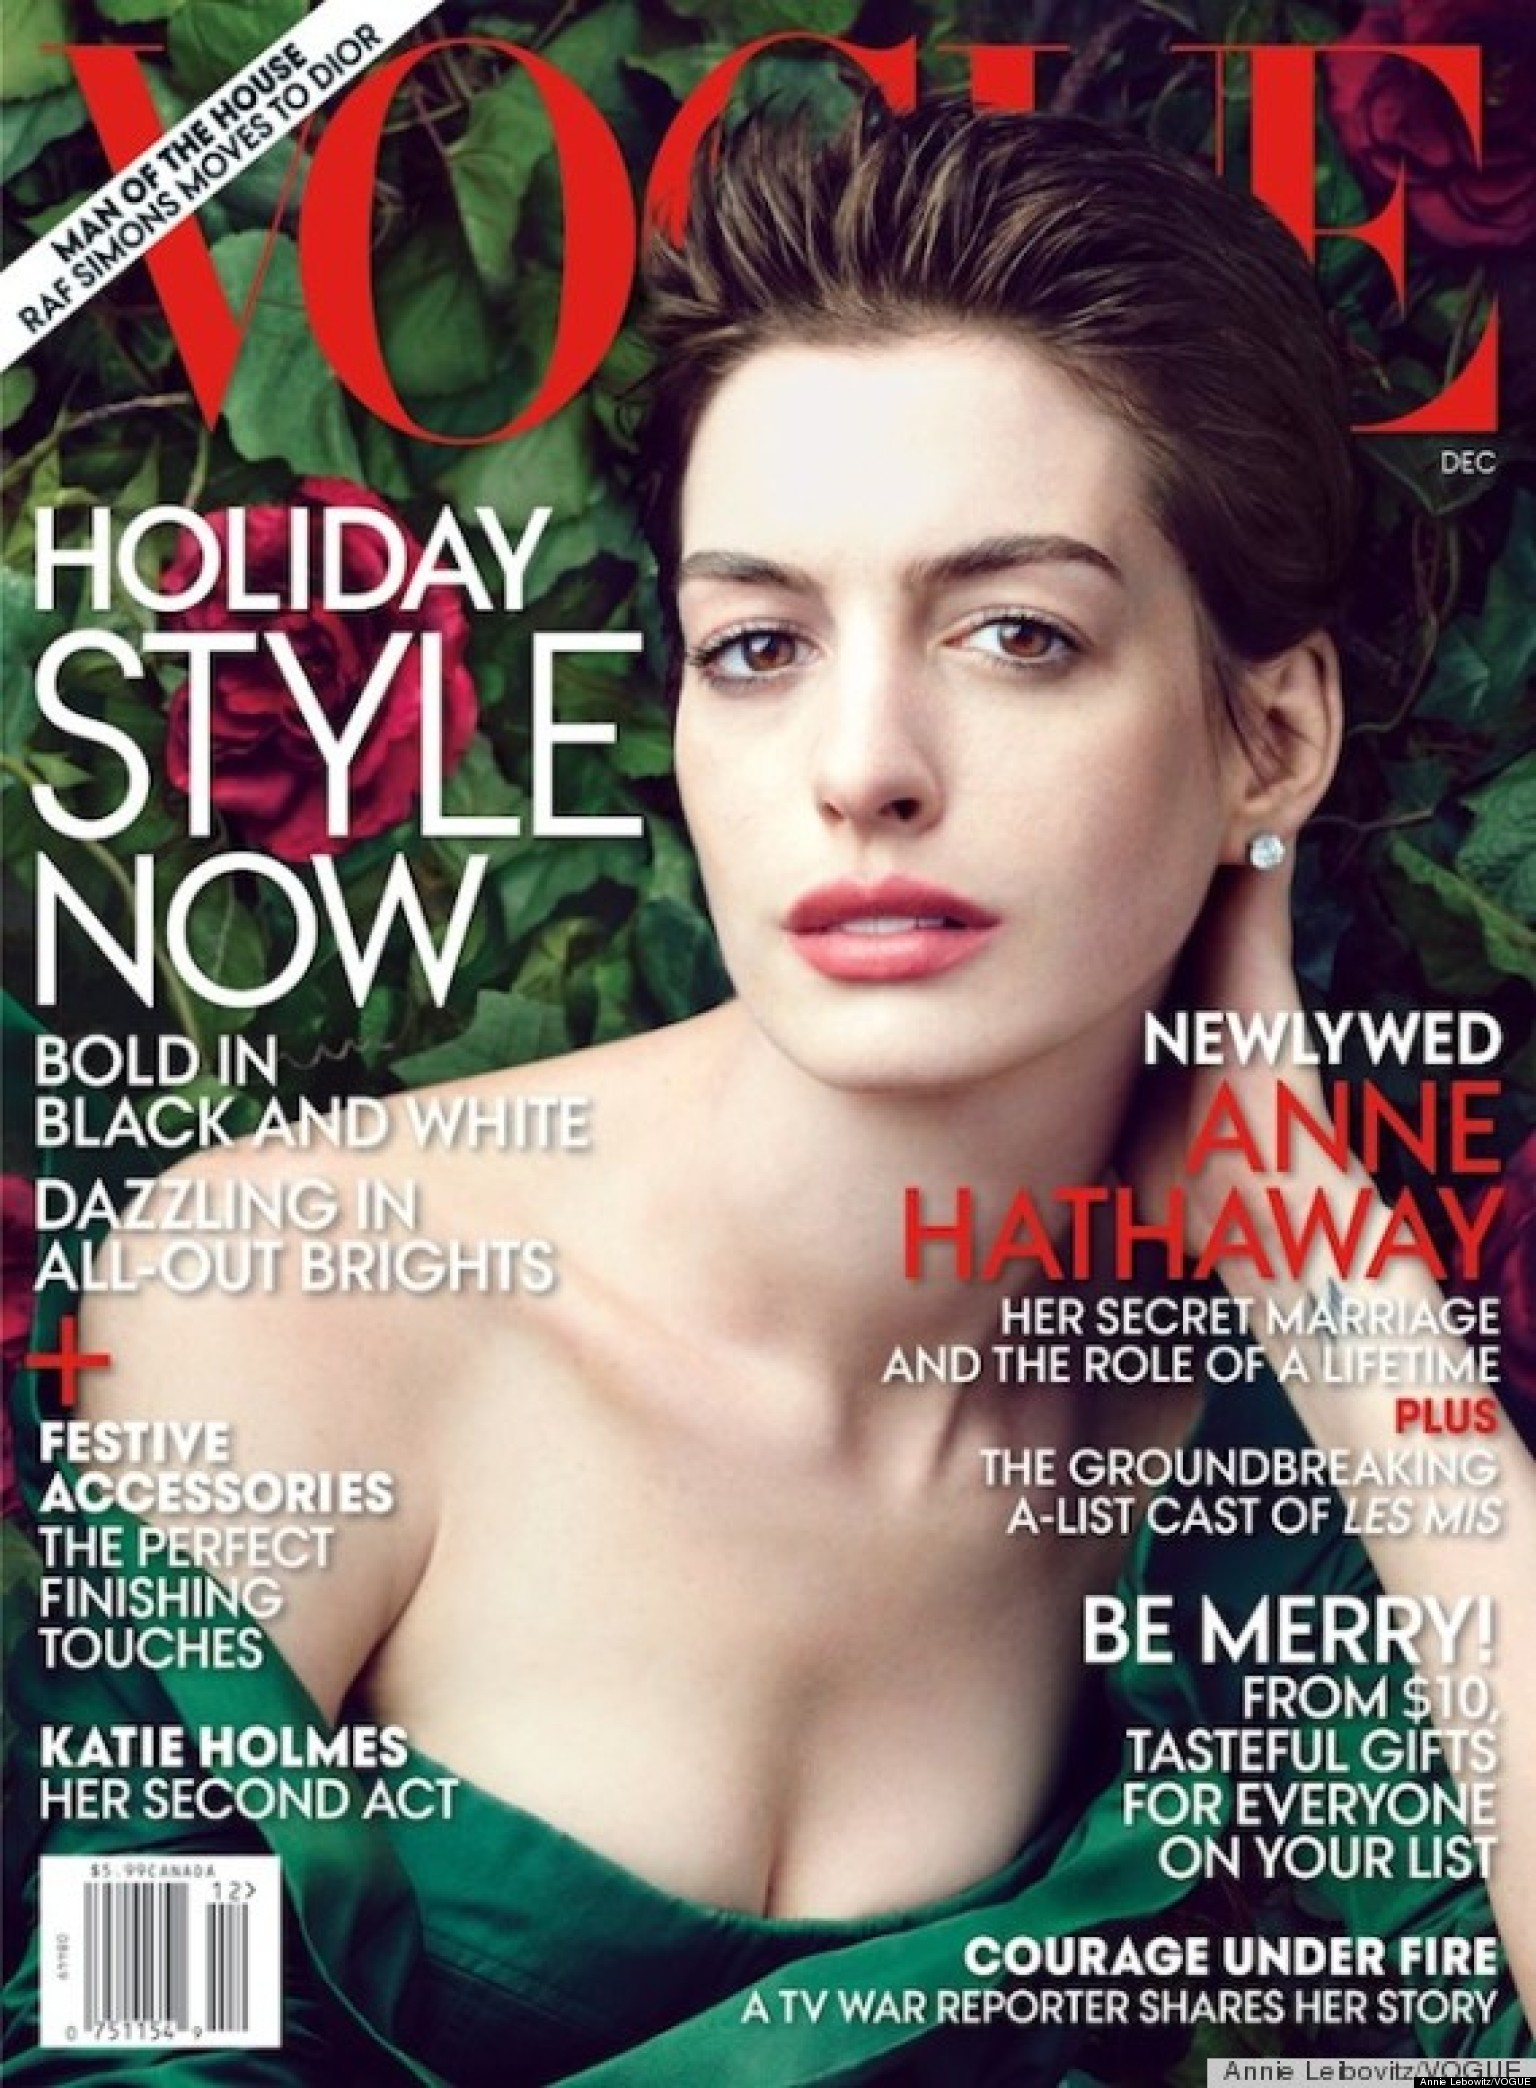 Anne hathaway weight loss actress talks intense diet for les mis anne hathaway weight loss actress talks intense diet for les mis photo huffpost ccuart Image collections